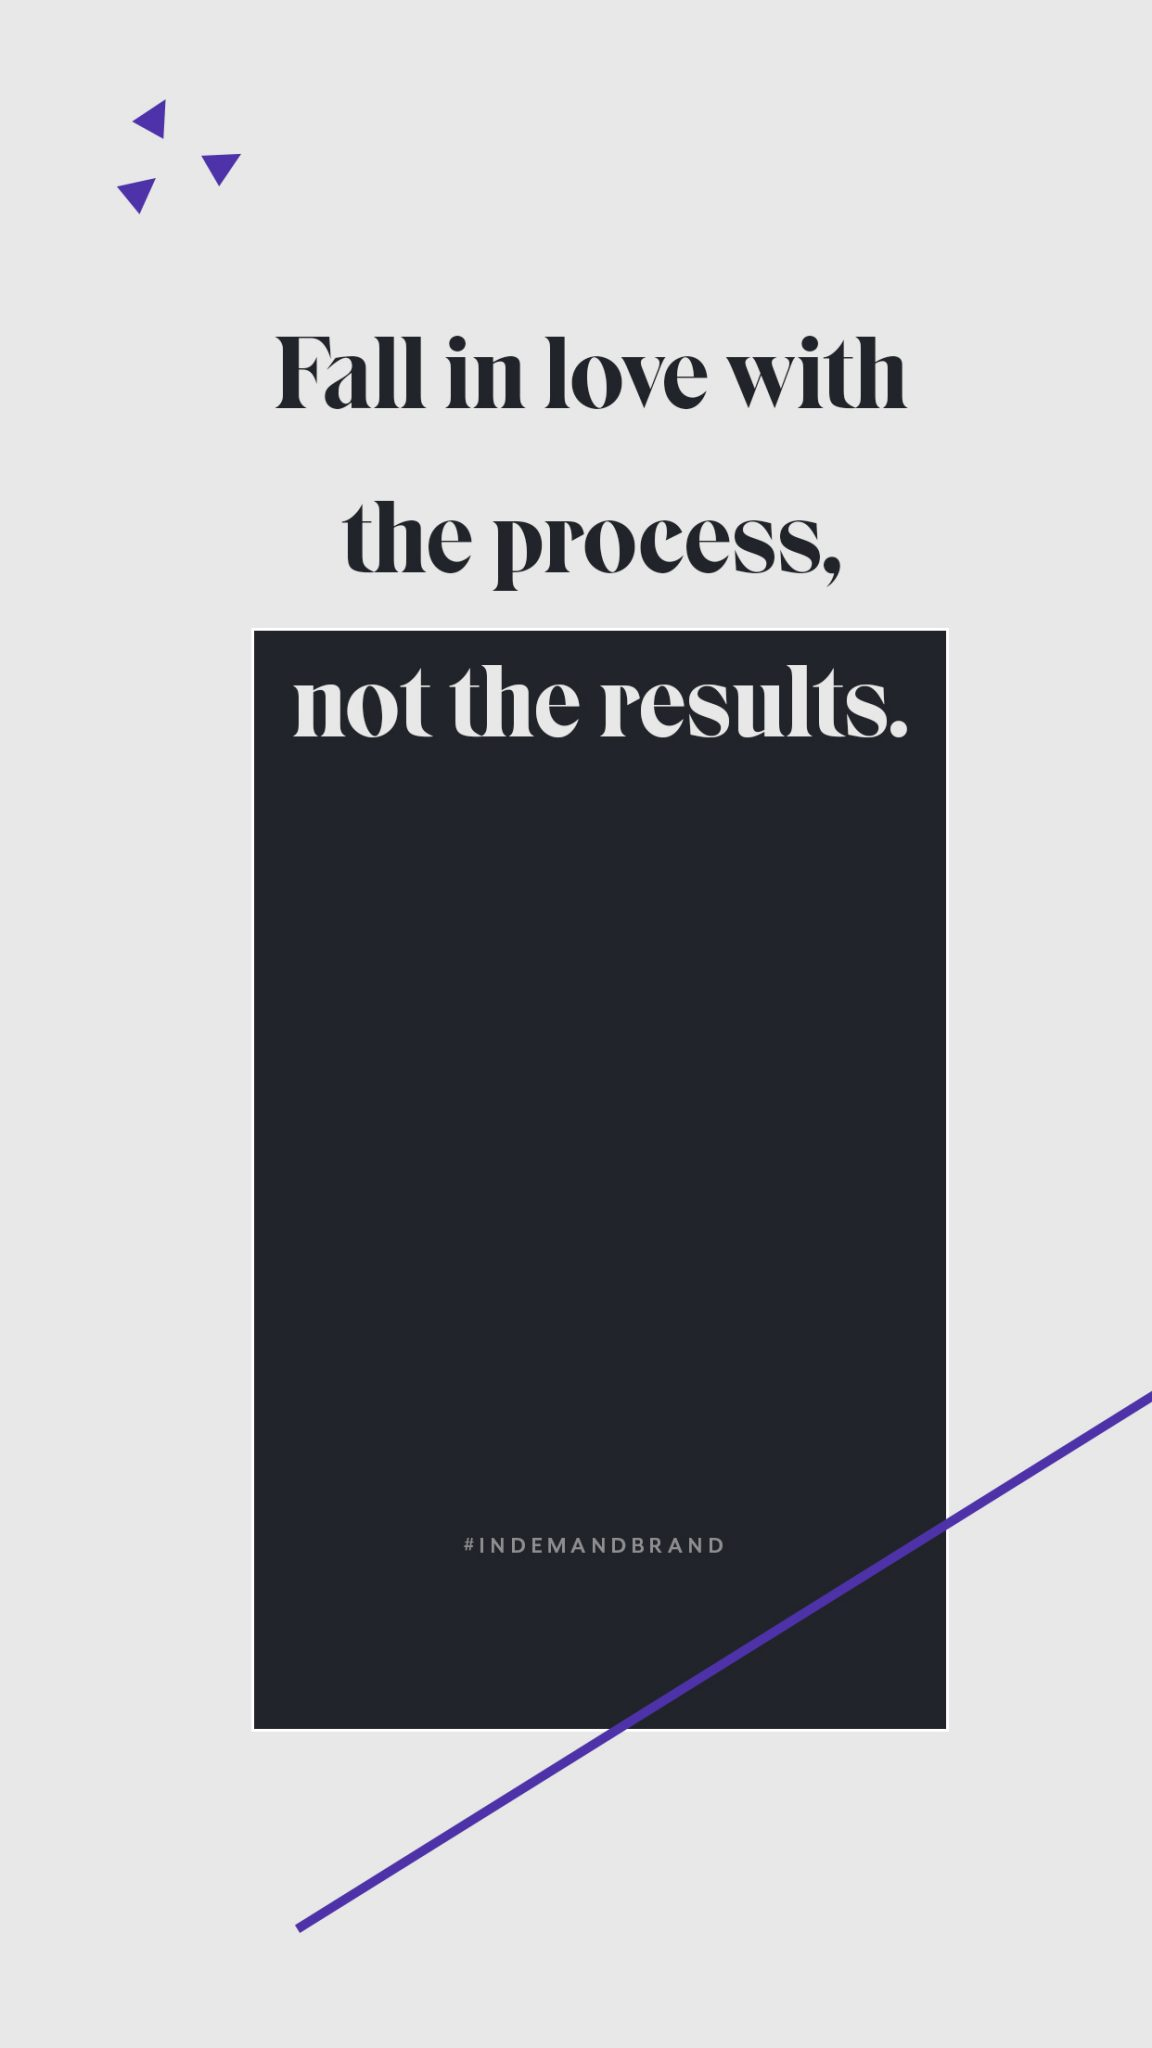 Fall in love with the process, not the results. #InDemandBrand